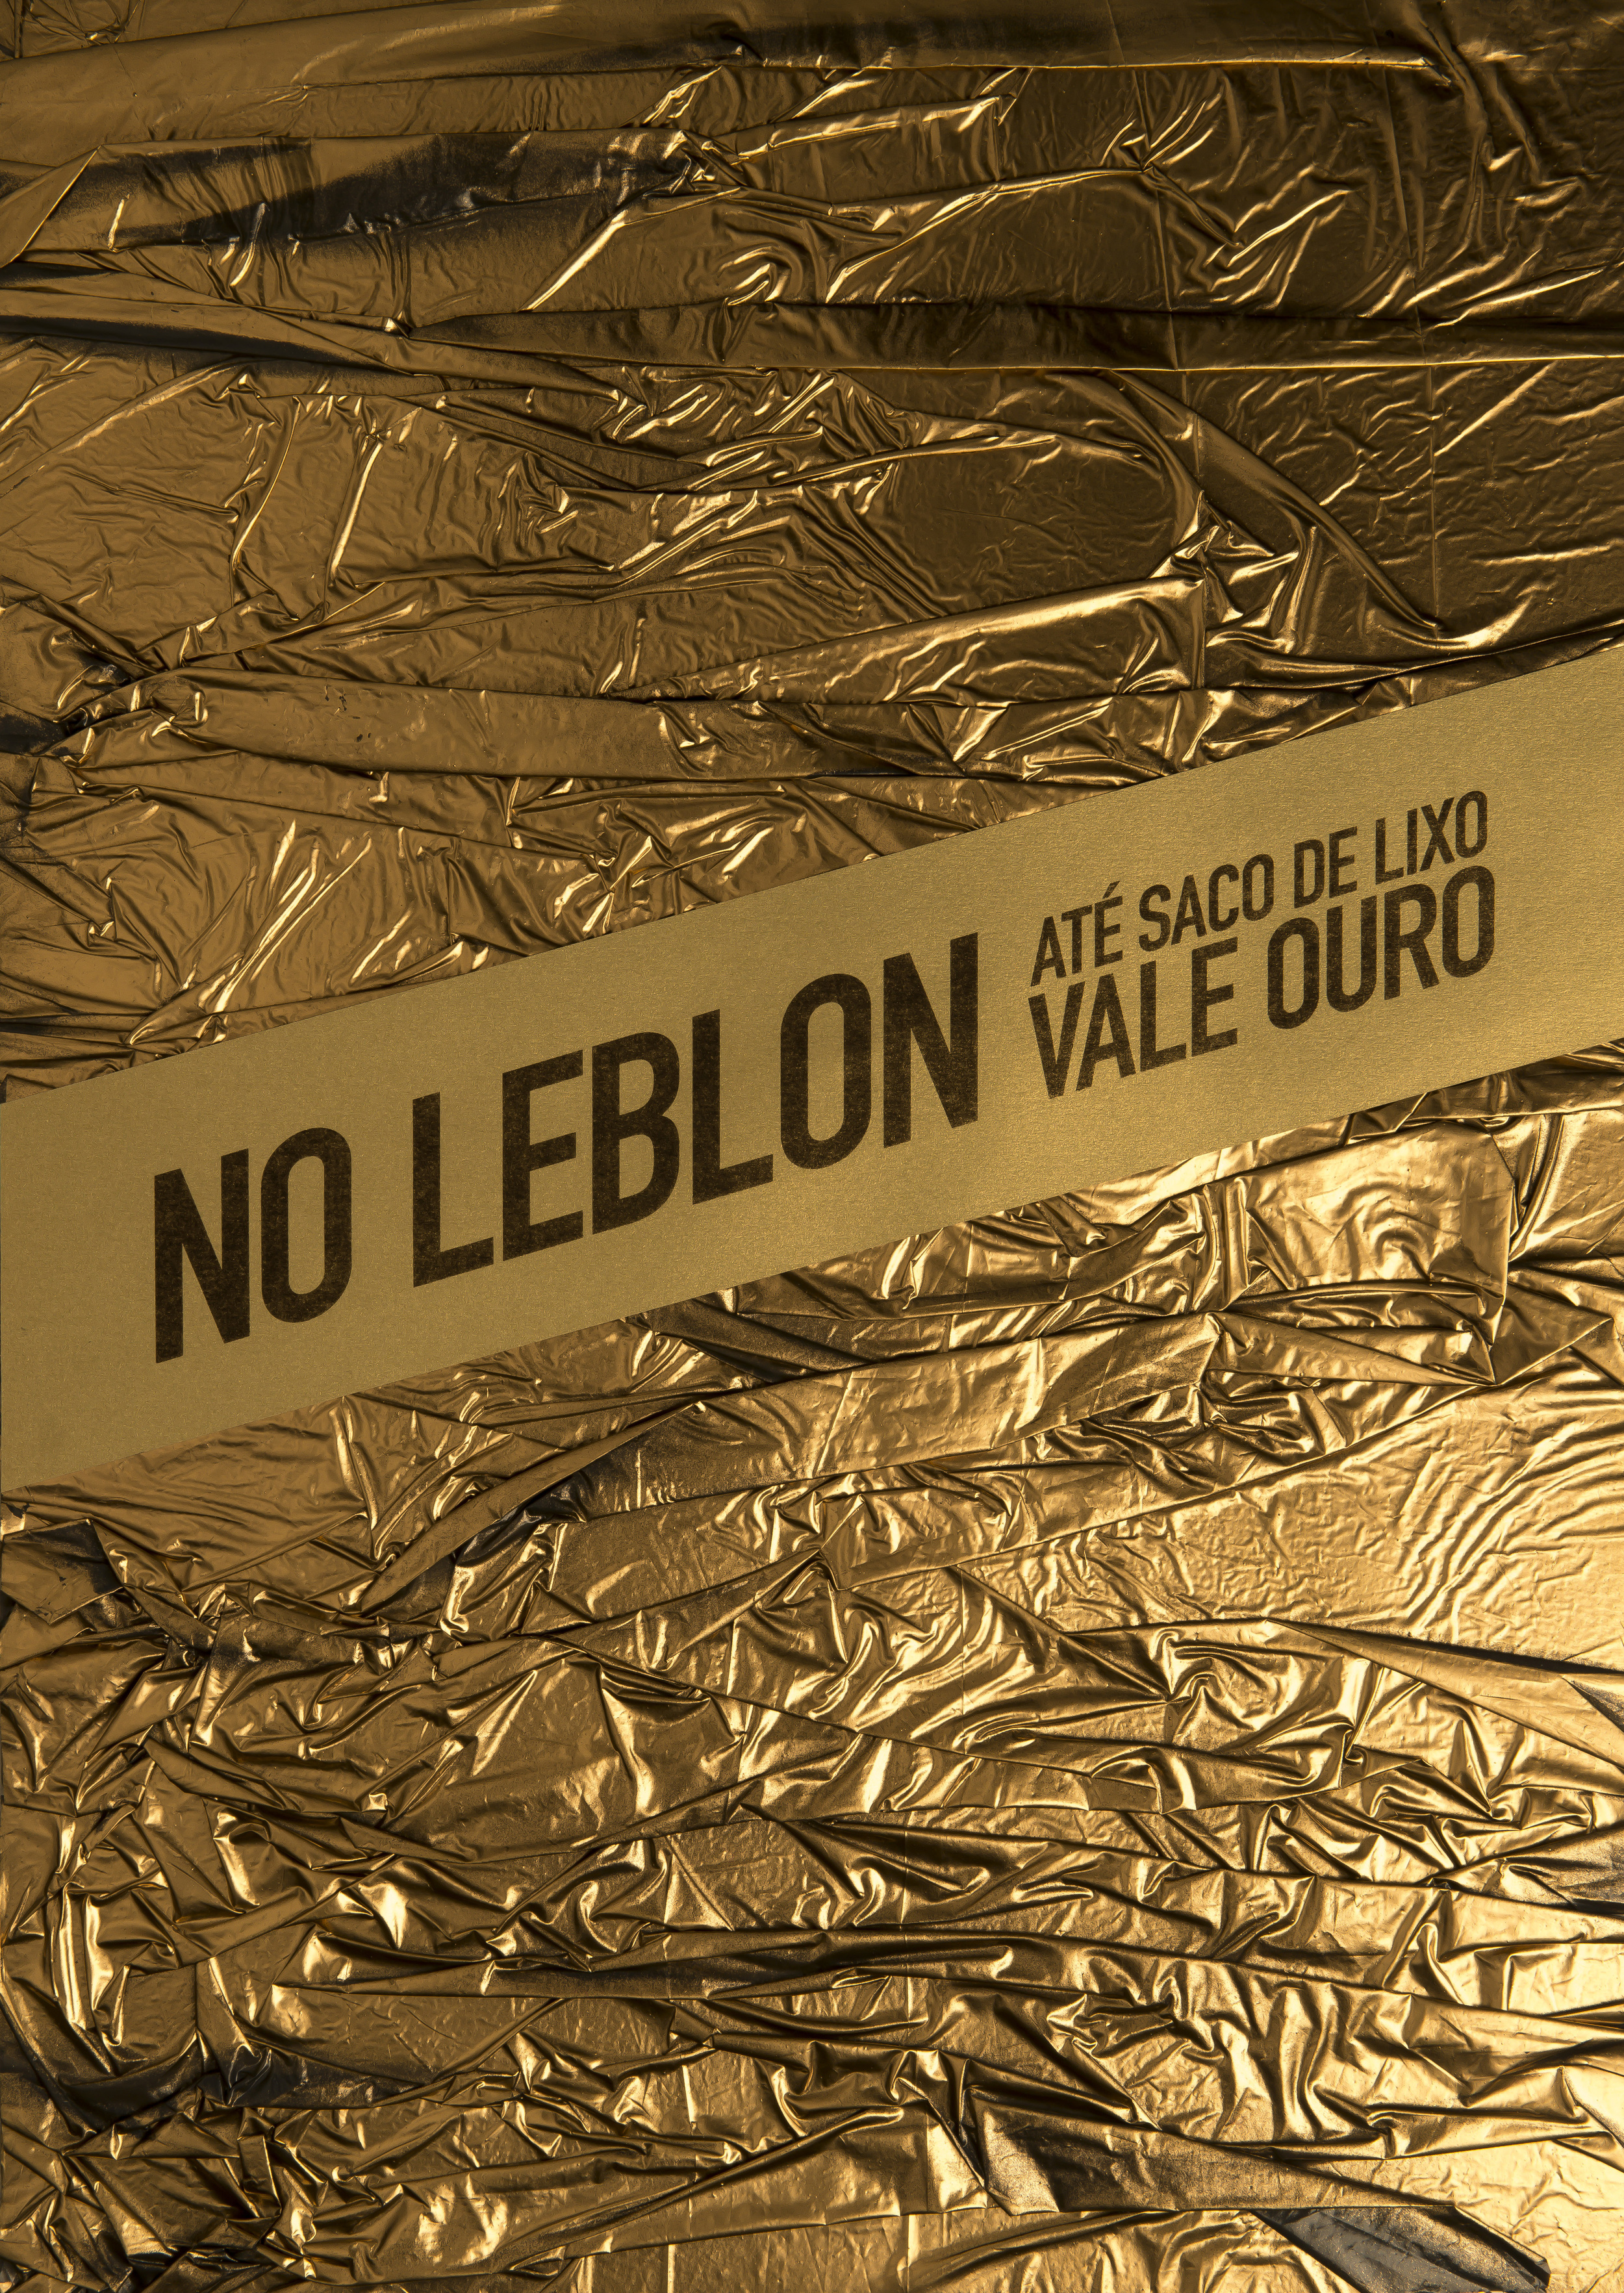 In Leblon, even    garbage bag    is worth gold.